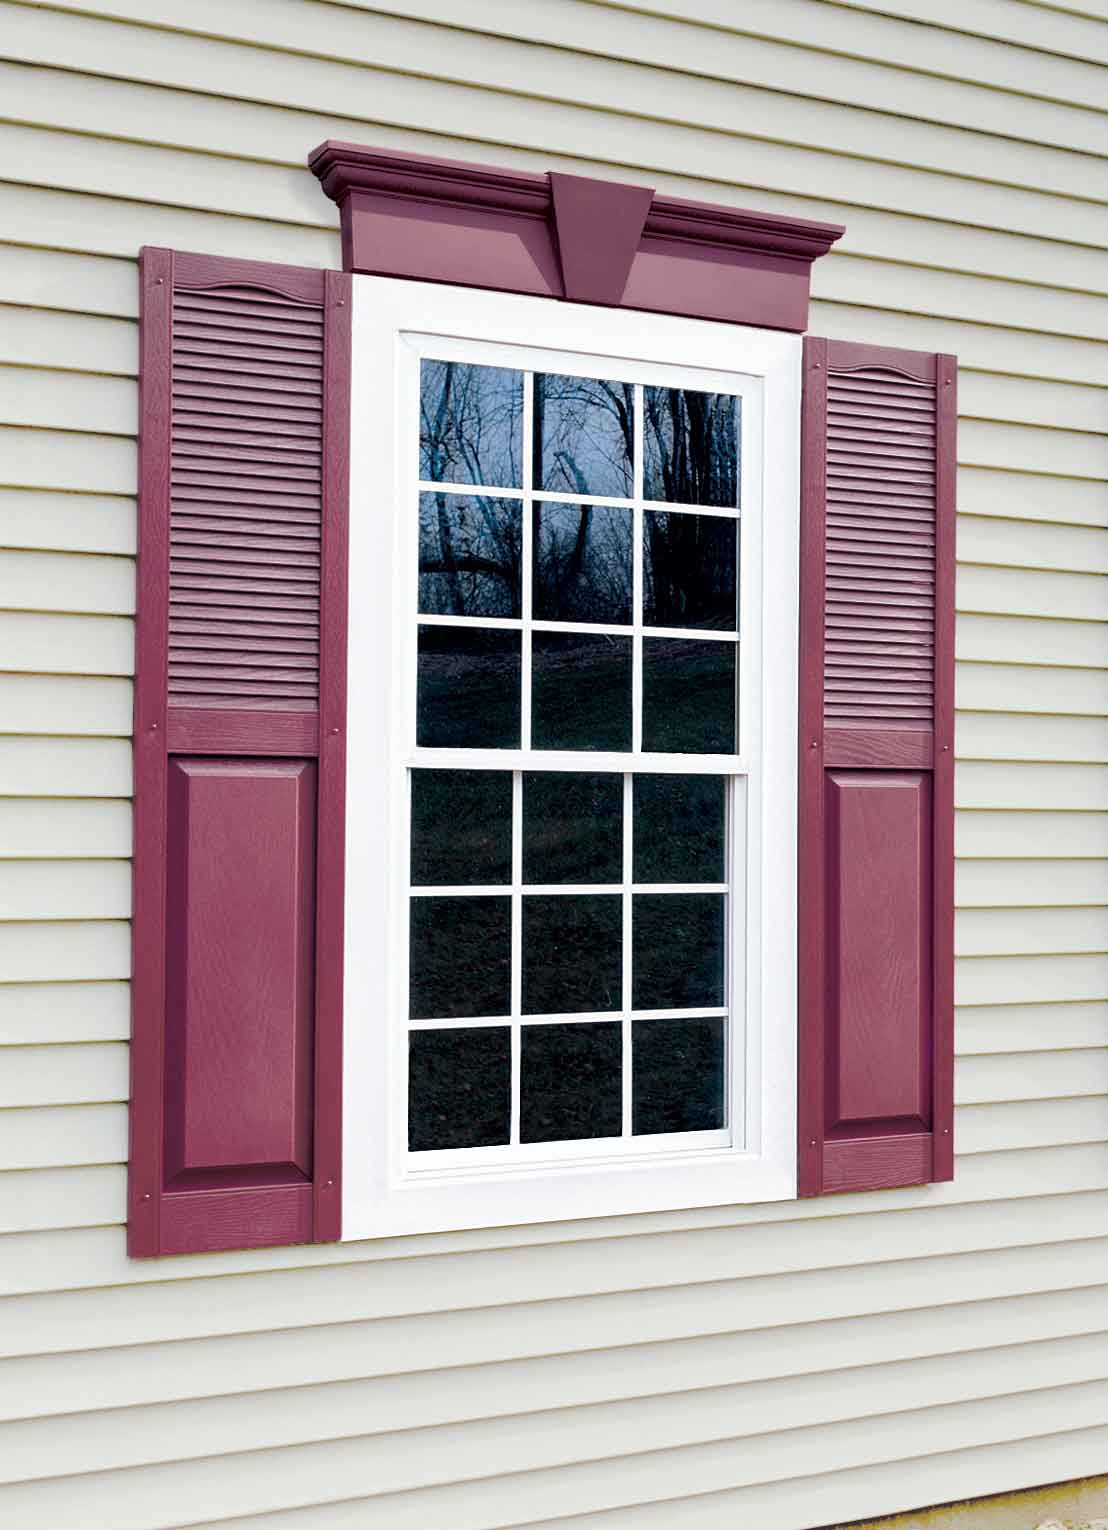 External shutters trade window shutters for Exterior louvered window shutters